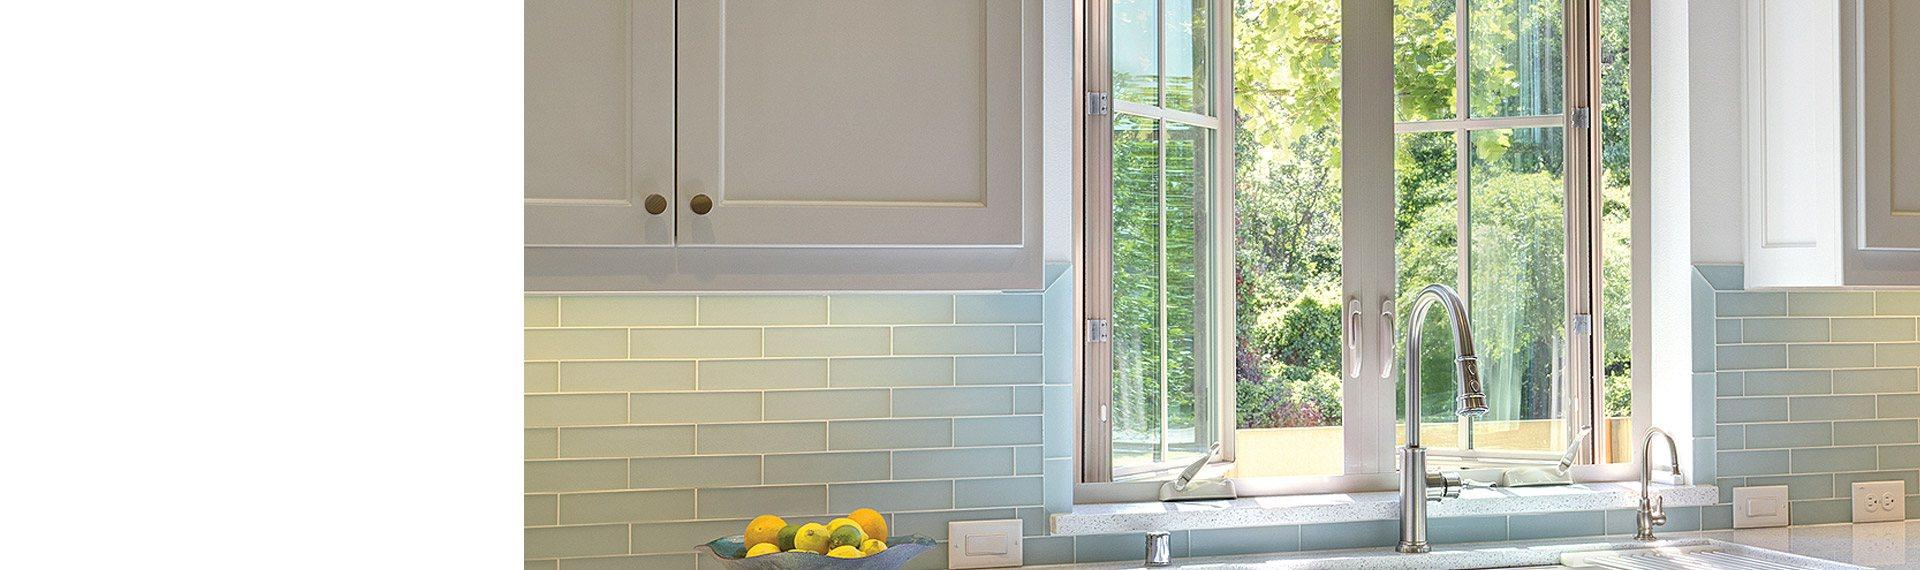 Montecito Series casement windows